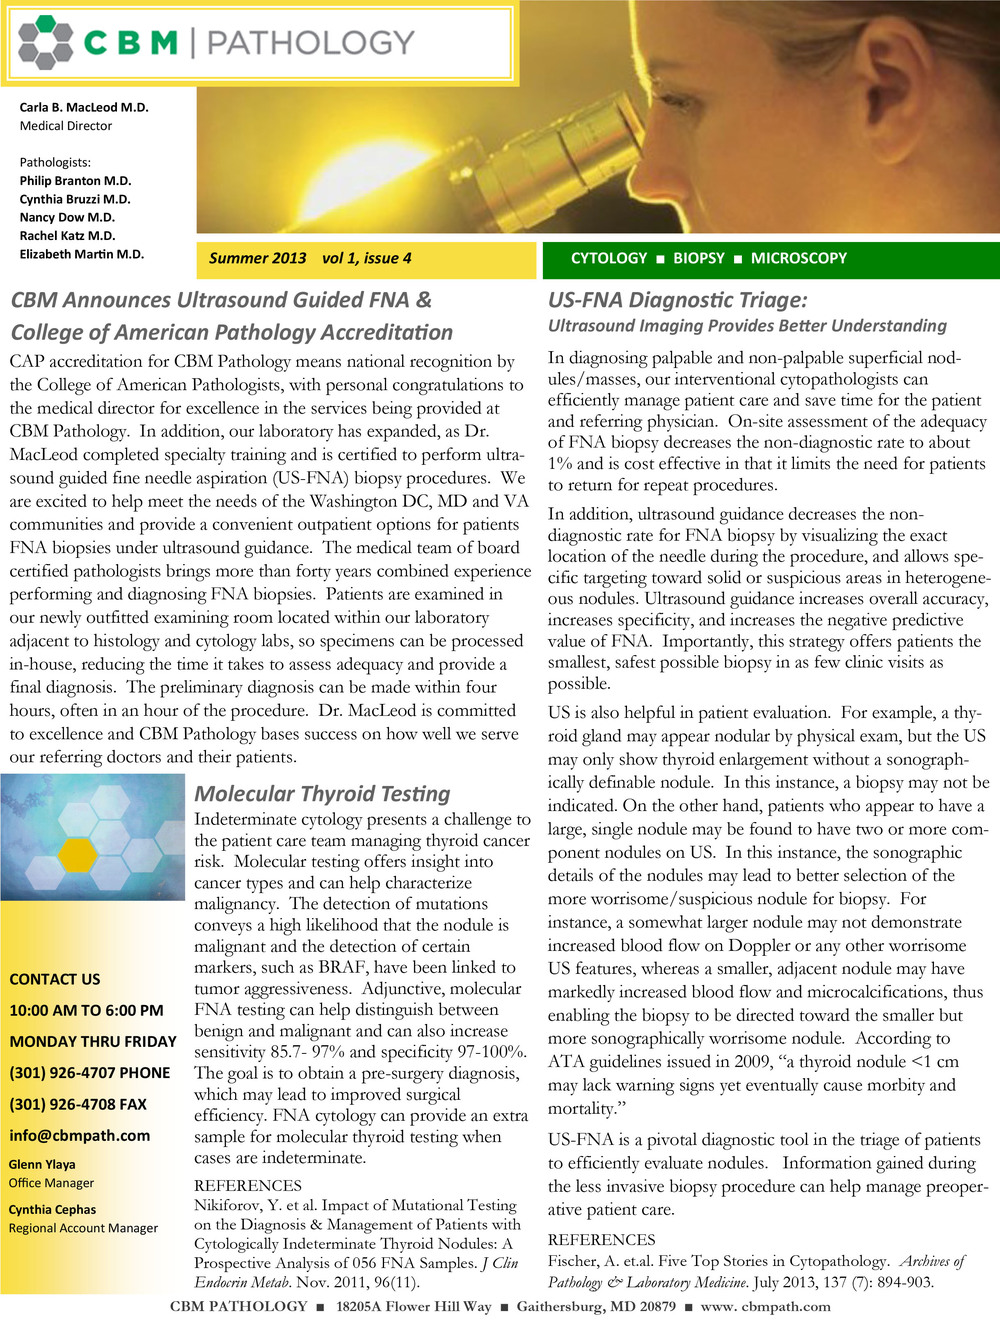 Summer 2013 - click on image for pdf to print Ultrasound Guided Fine Needle Aspiration